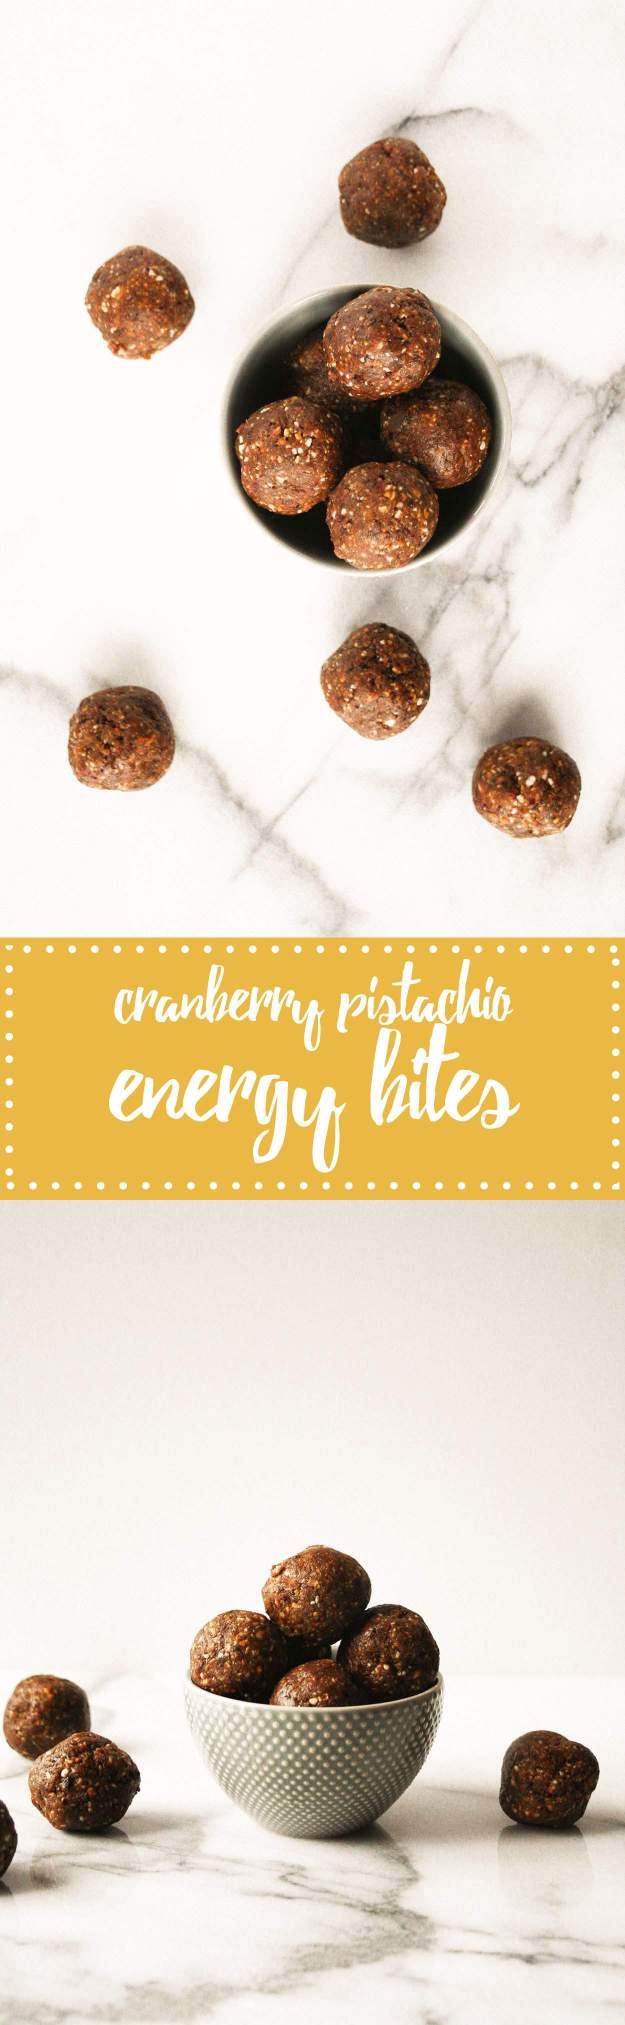 5 Ingredient Cranberry Pistachio Energy Bites | hungrybynature.com